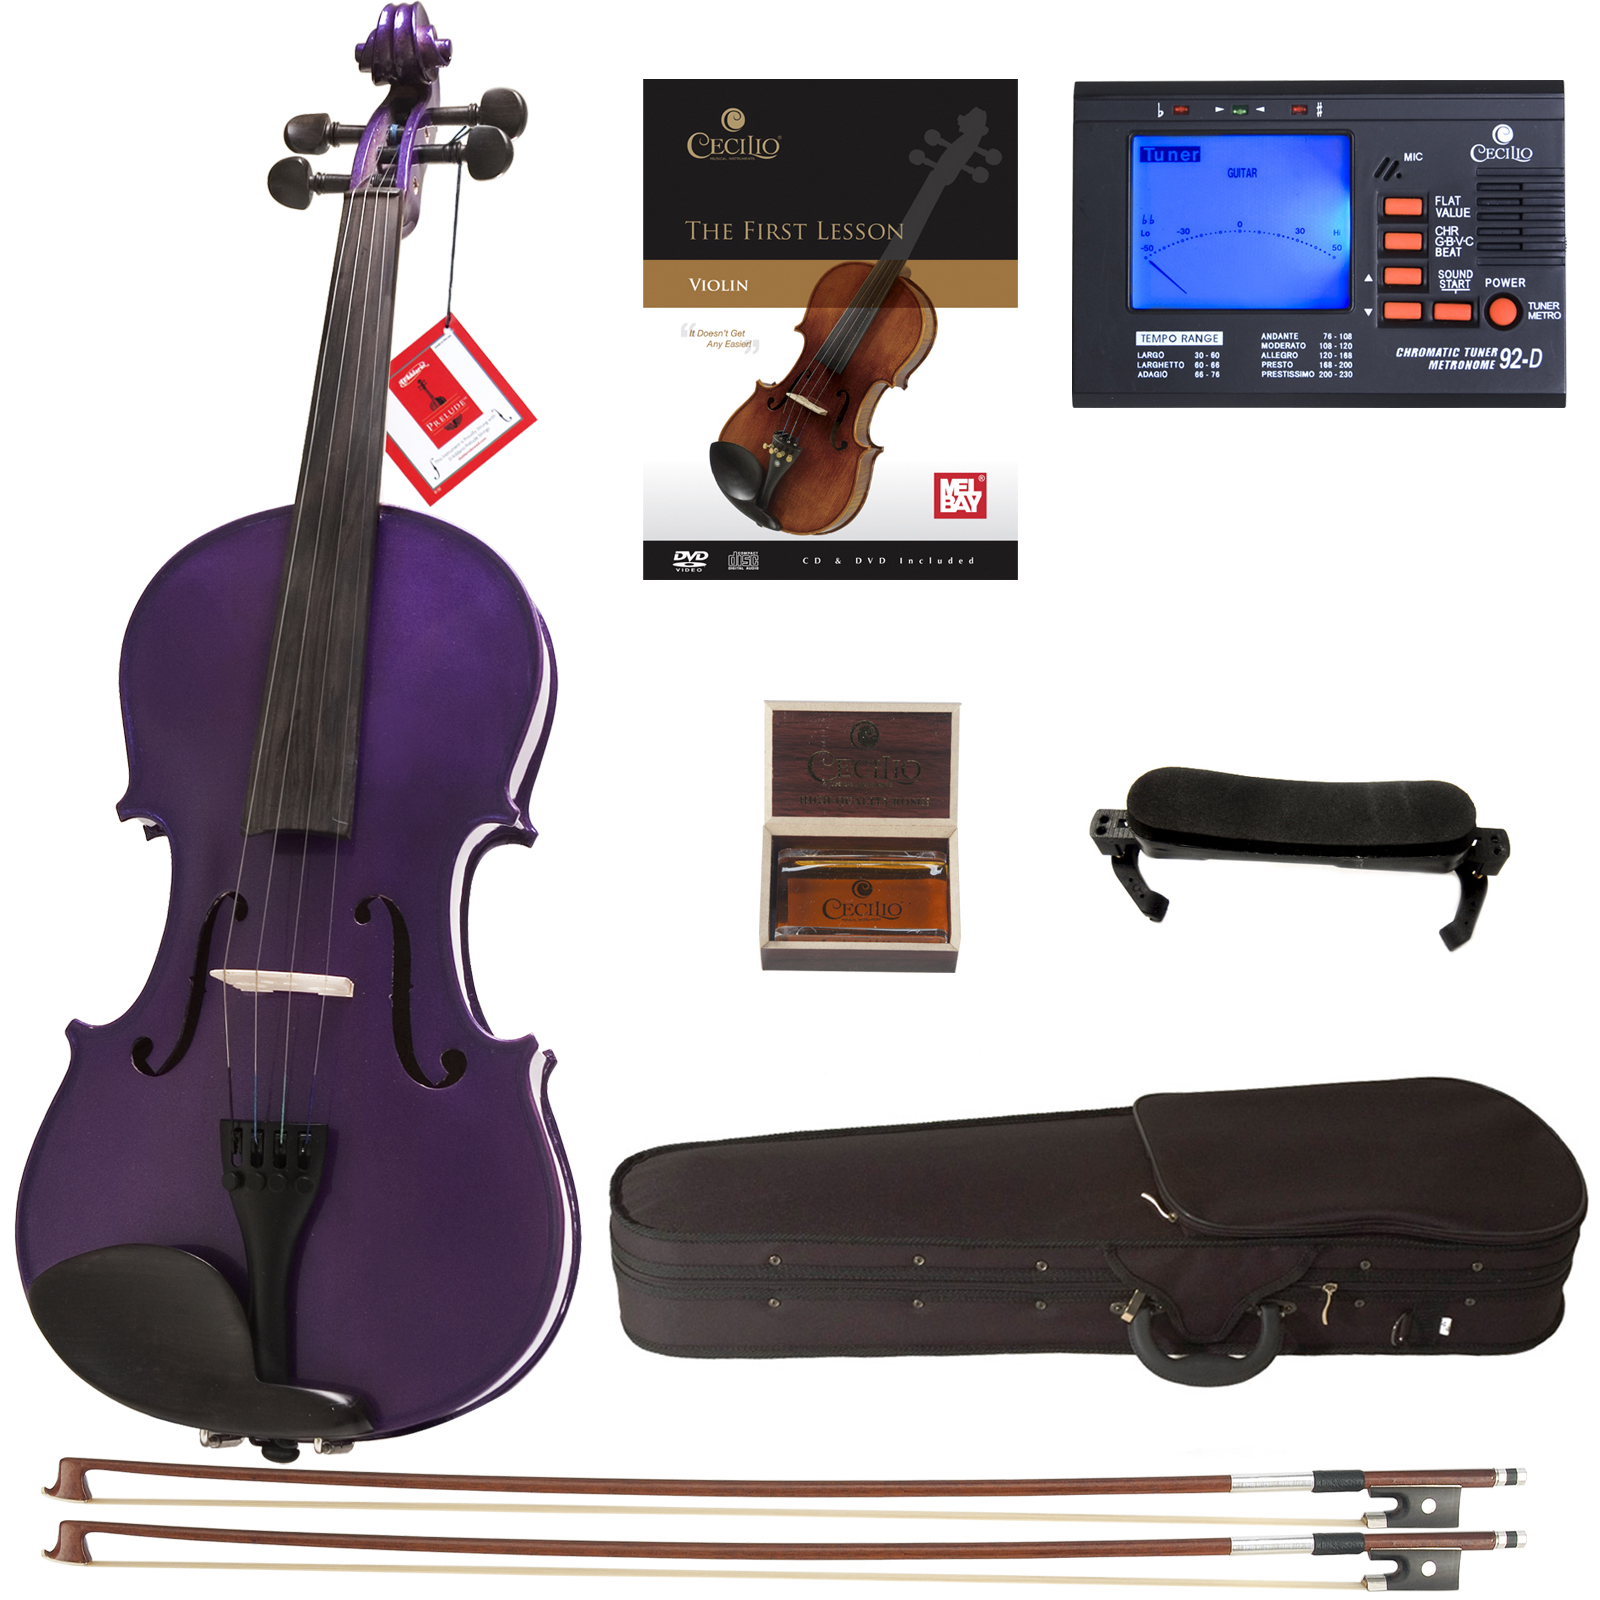 Cecilio Full Size Ebony Fitted Solid Wood Metallic Purple Violin w/D'Addario Prelude Strings, Lesson Book, Shoulder Rest and More 4/4CVN-Purple